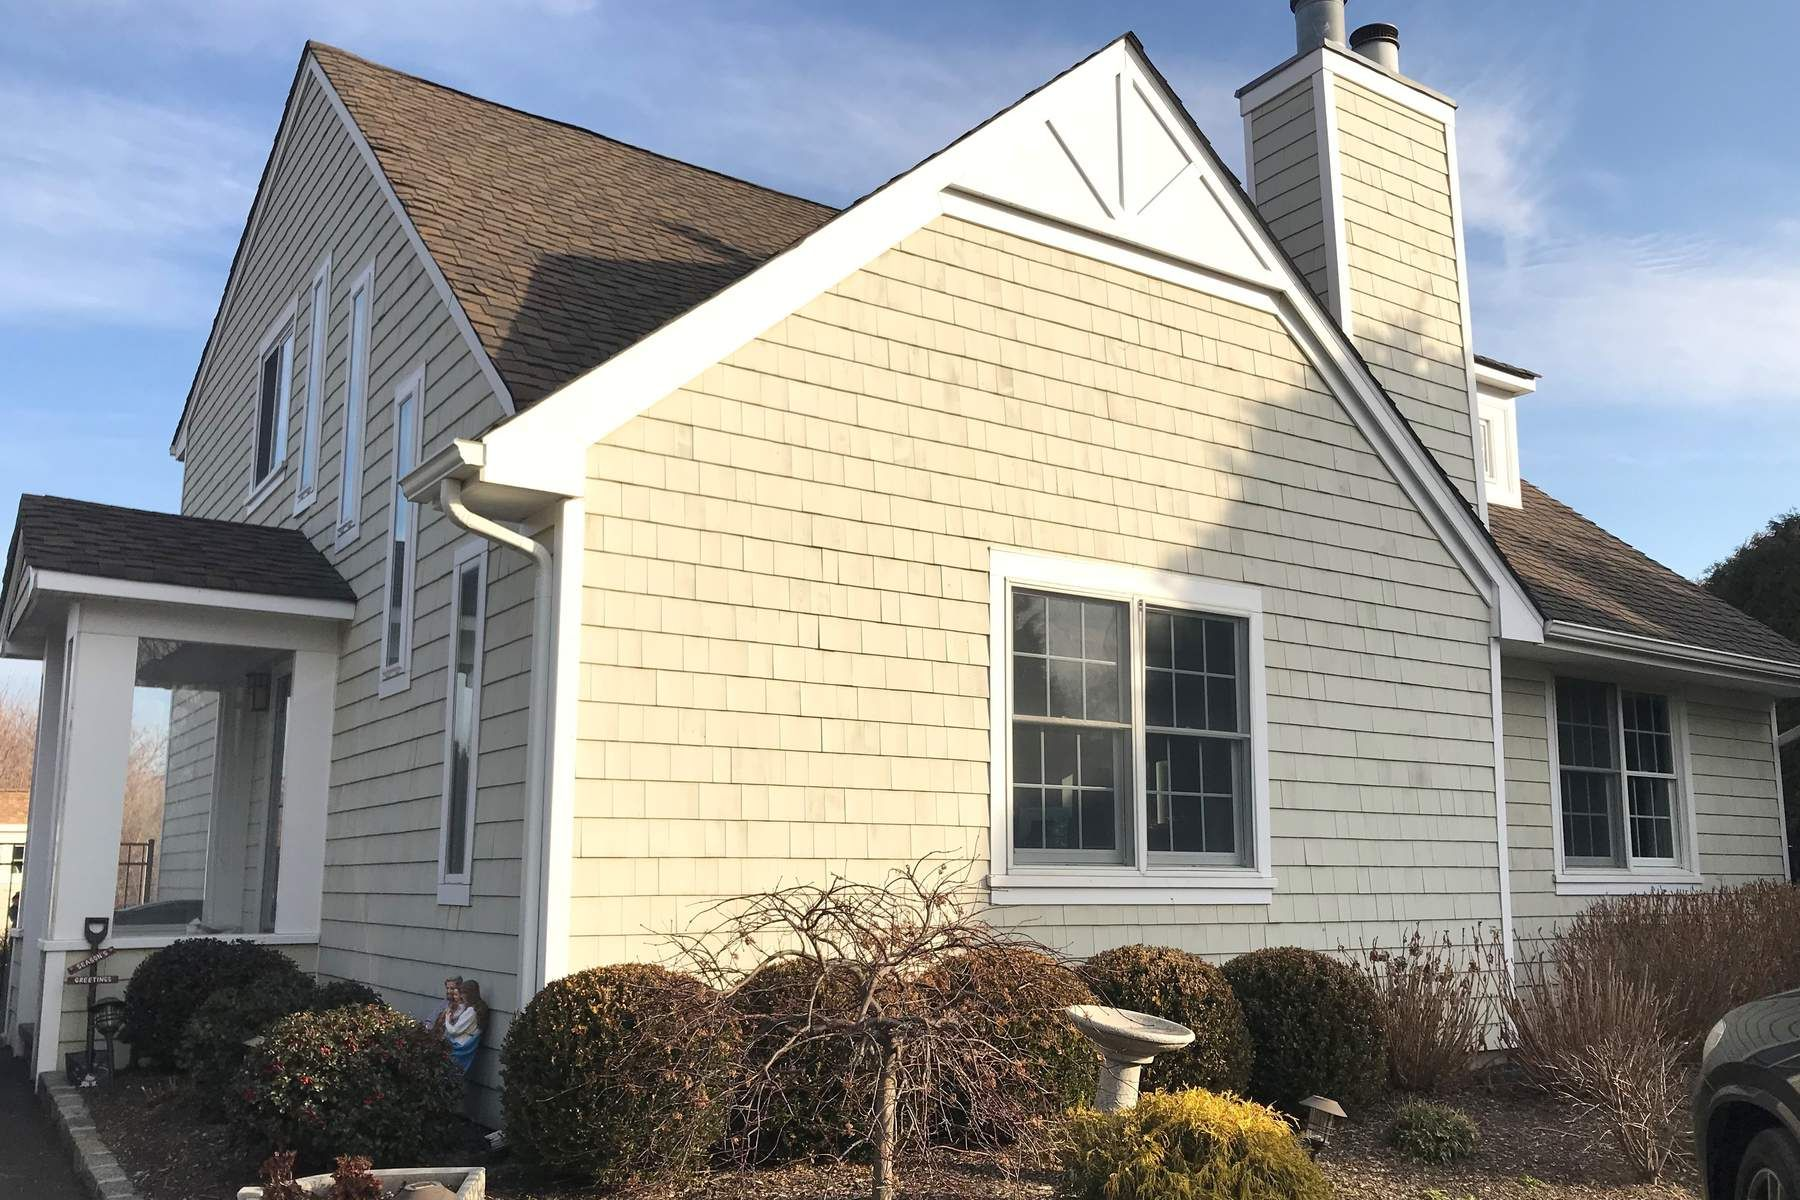 Single Family Home for Rent at Close To The Village In Southampton 10 Juniper Lane Southampton, New York 11968 United States